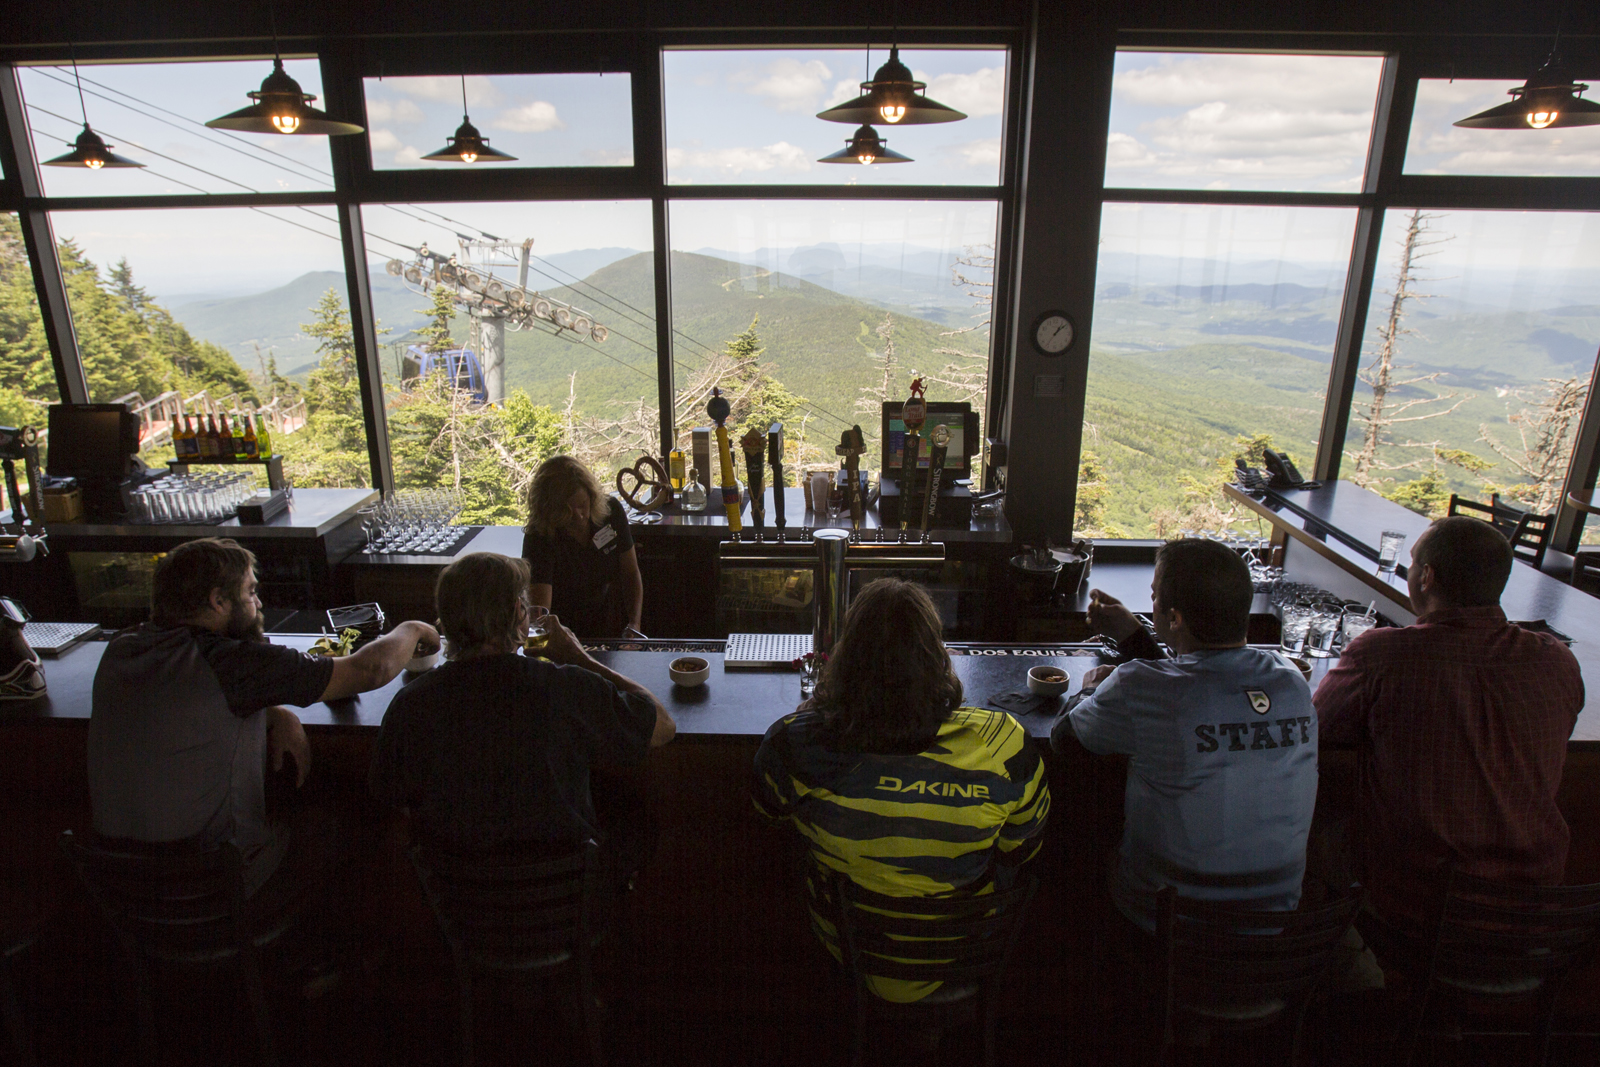 Killington's Peak Lodge serves up the best tap-side views in the state.